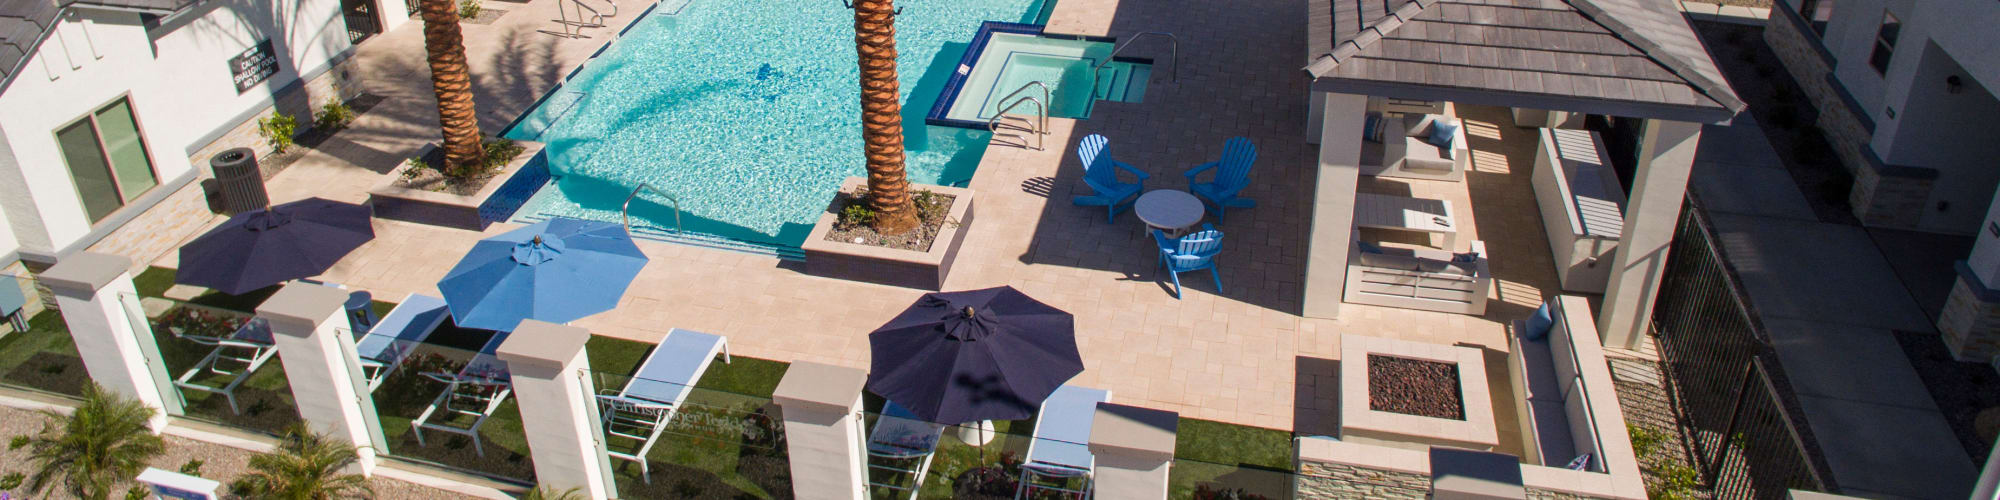 Apply to live at Christopher Todd Communities On Happy Valley in Peoria, Arizona